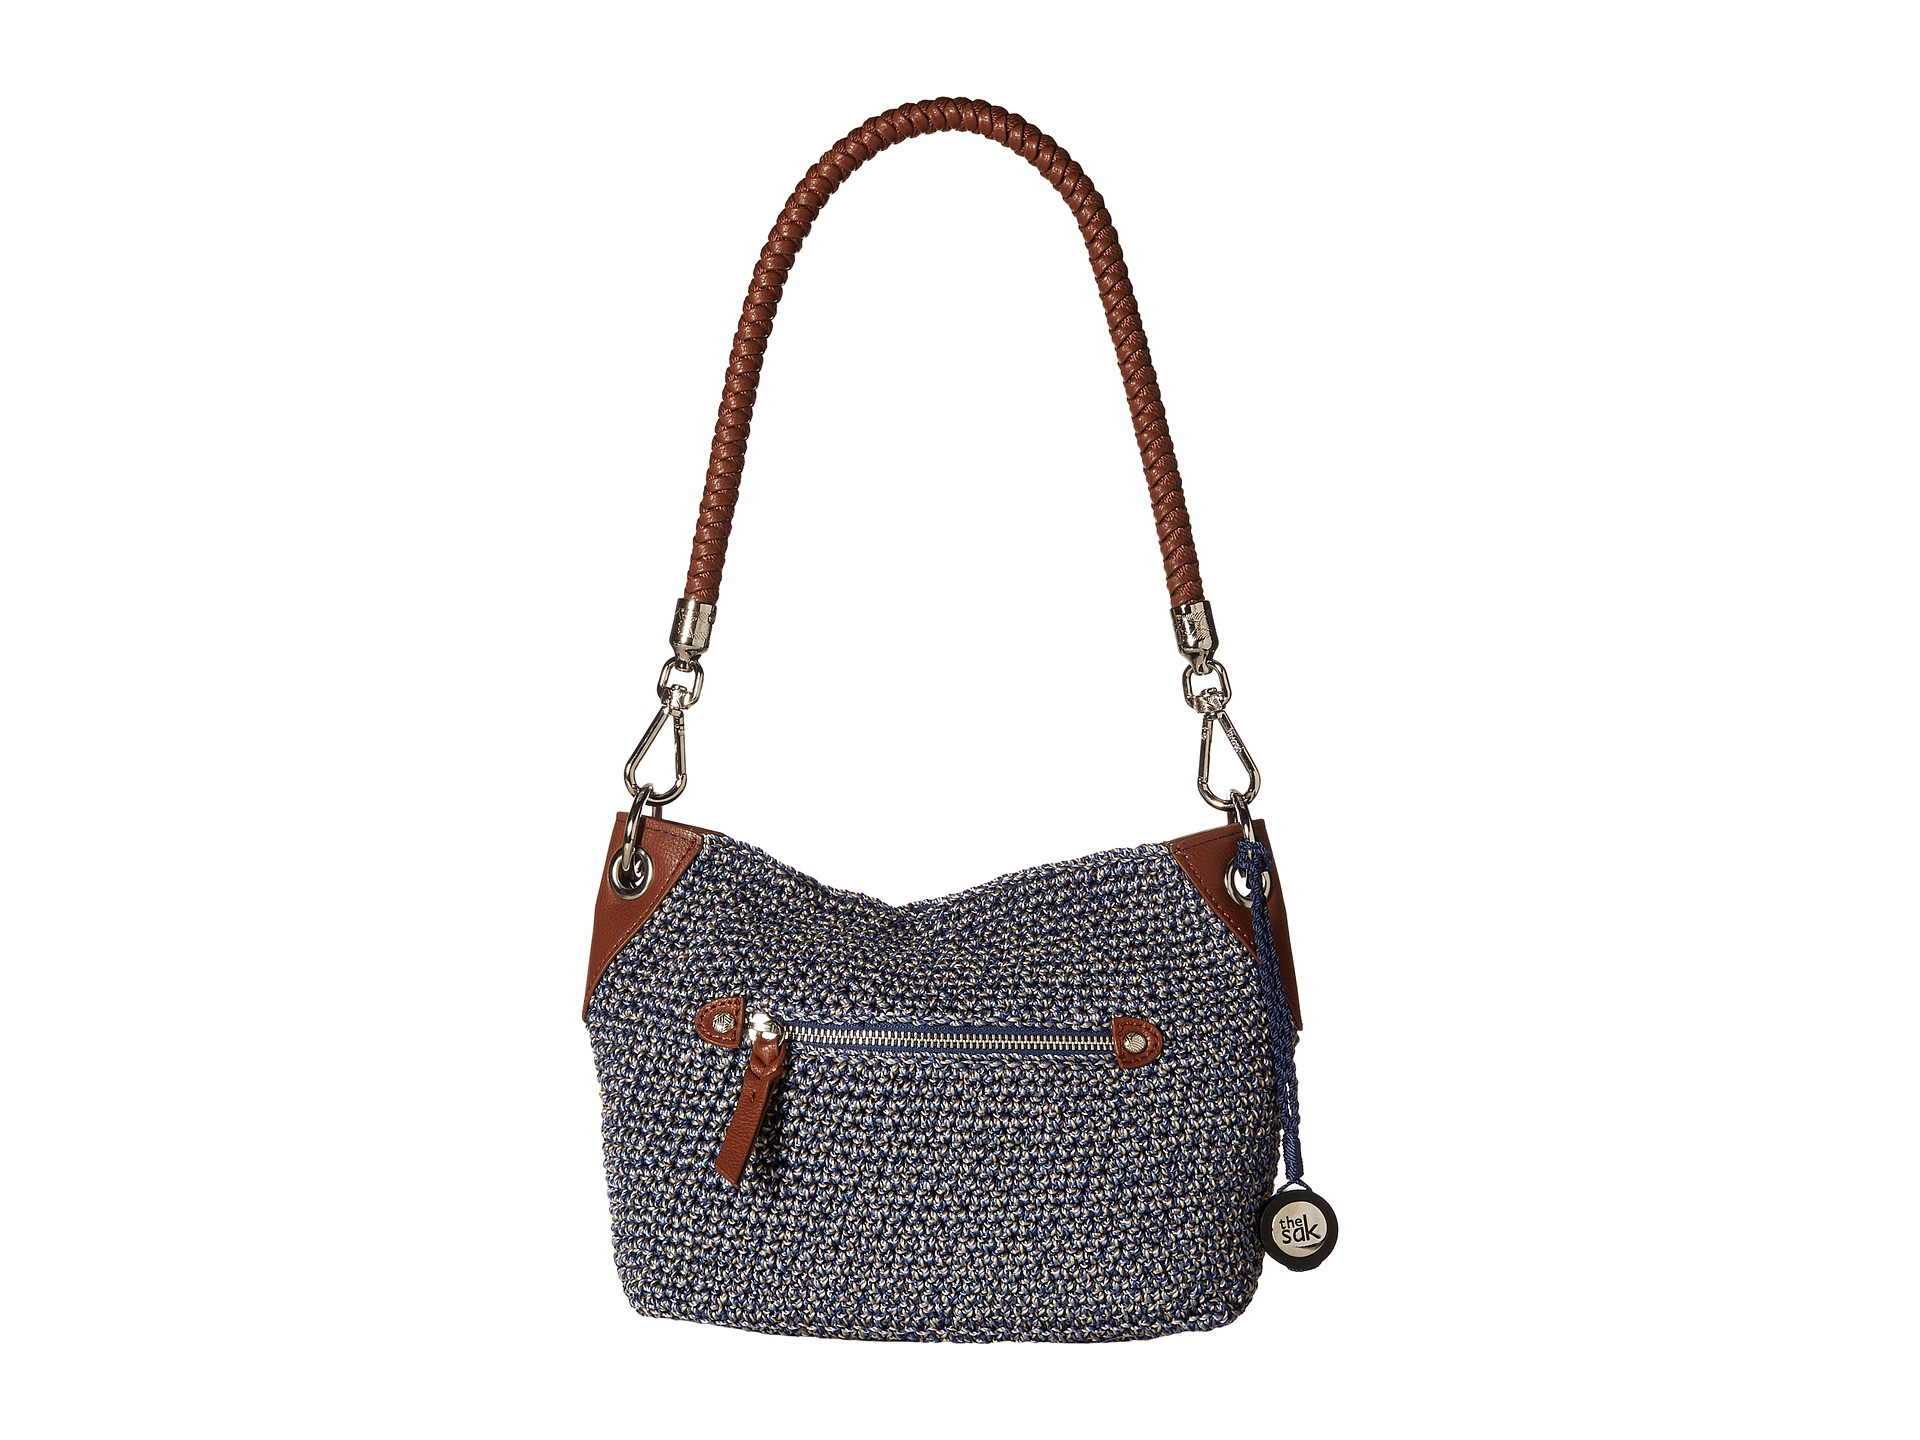 The Sak Crochet Luxury the Sak Indio Crochet Demi Hobo Denim Static Zappos Of The Sak Crochet Awesome the Sak Black Crochet Cross Body Shoulder Bag Purse Handbag